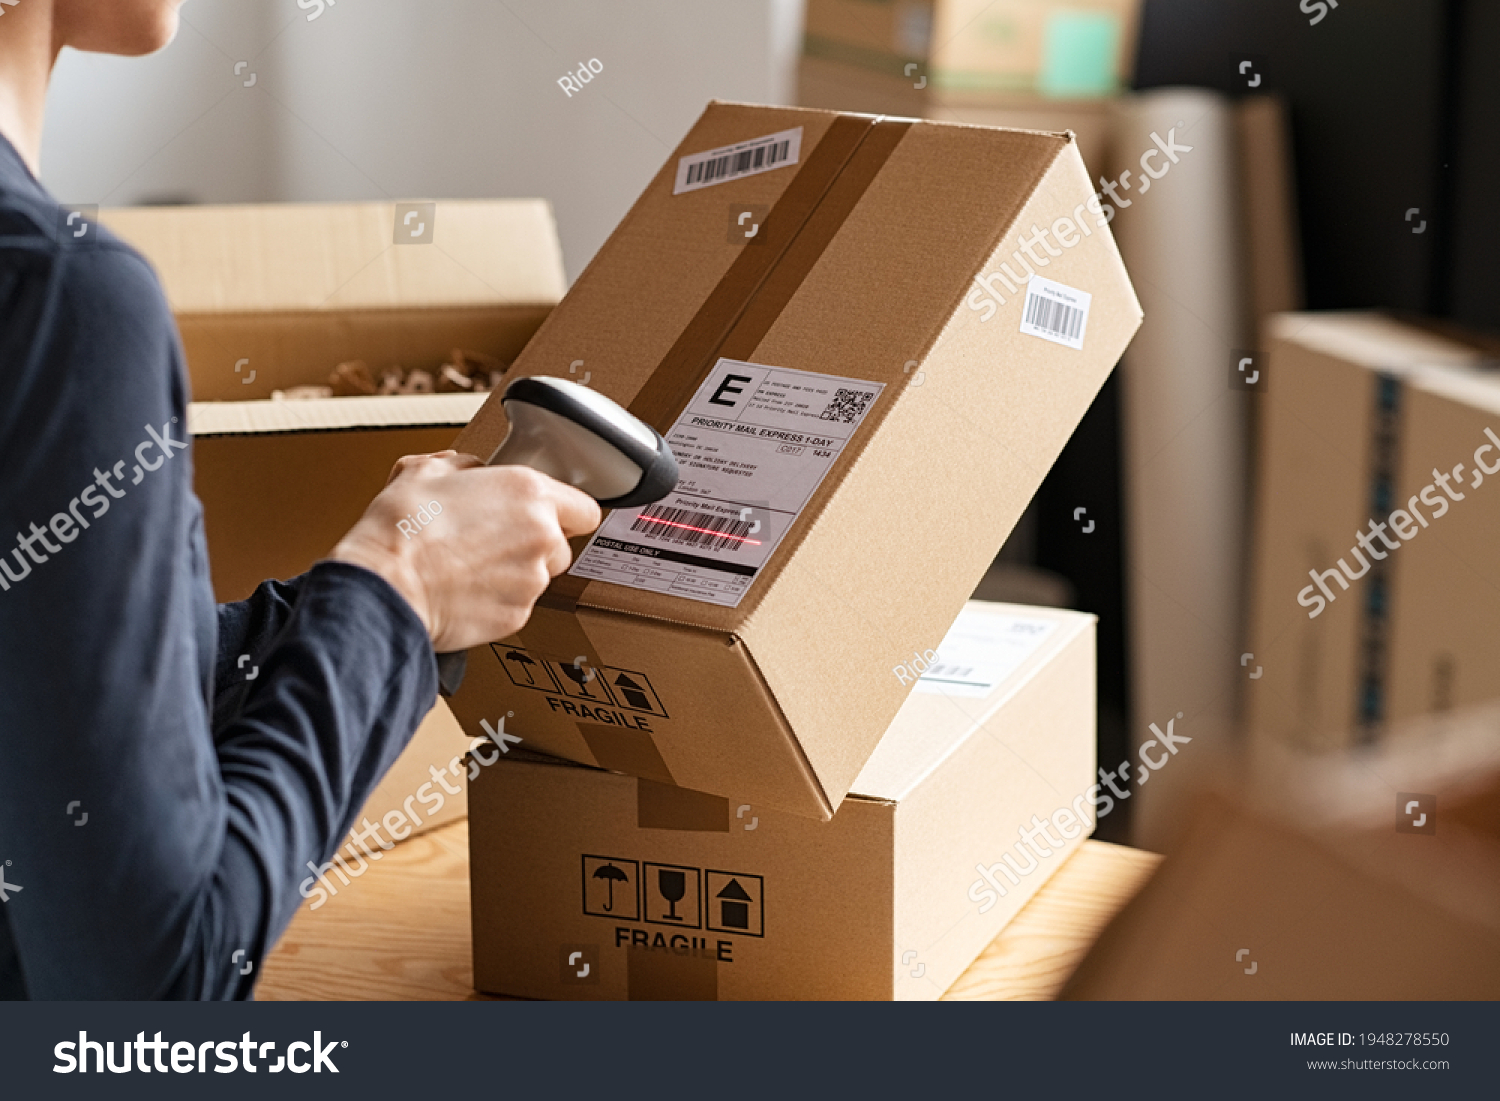 Hands scanning barcode on delivery parcel. Worker scan barcode of cardboard packages before delivery at storage. Woman working in factory warehouse scanning labels on the boxes with barcode scanner. #1948278550